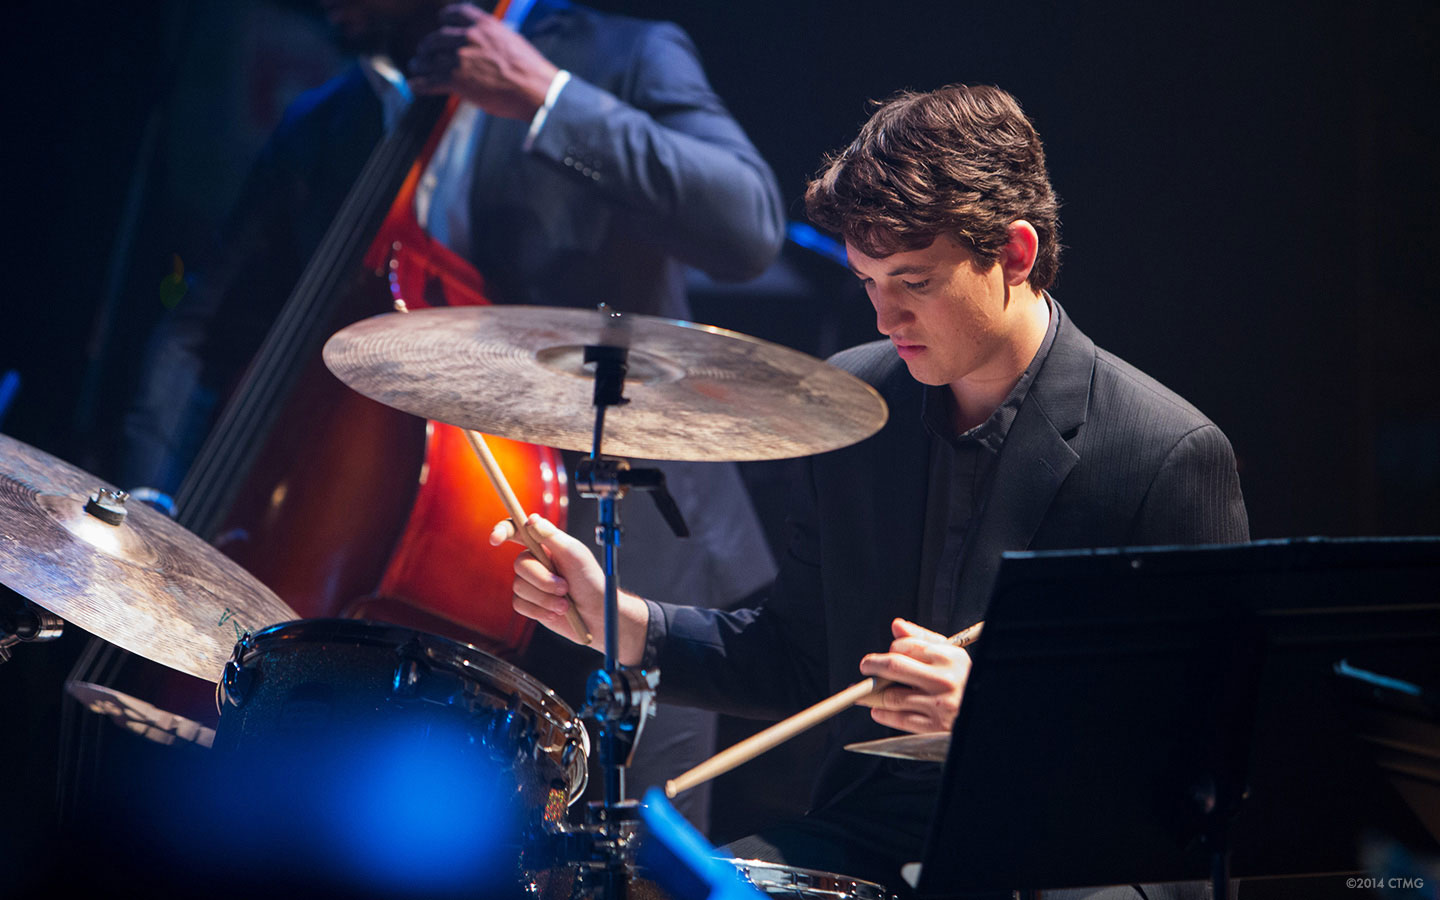 Whiplash-Eigauk-Eiga-UK-Film-News-in-UK